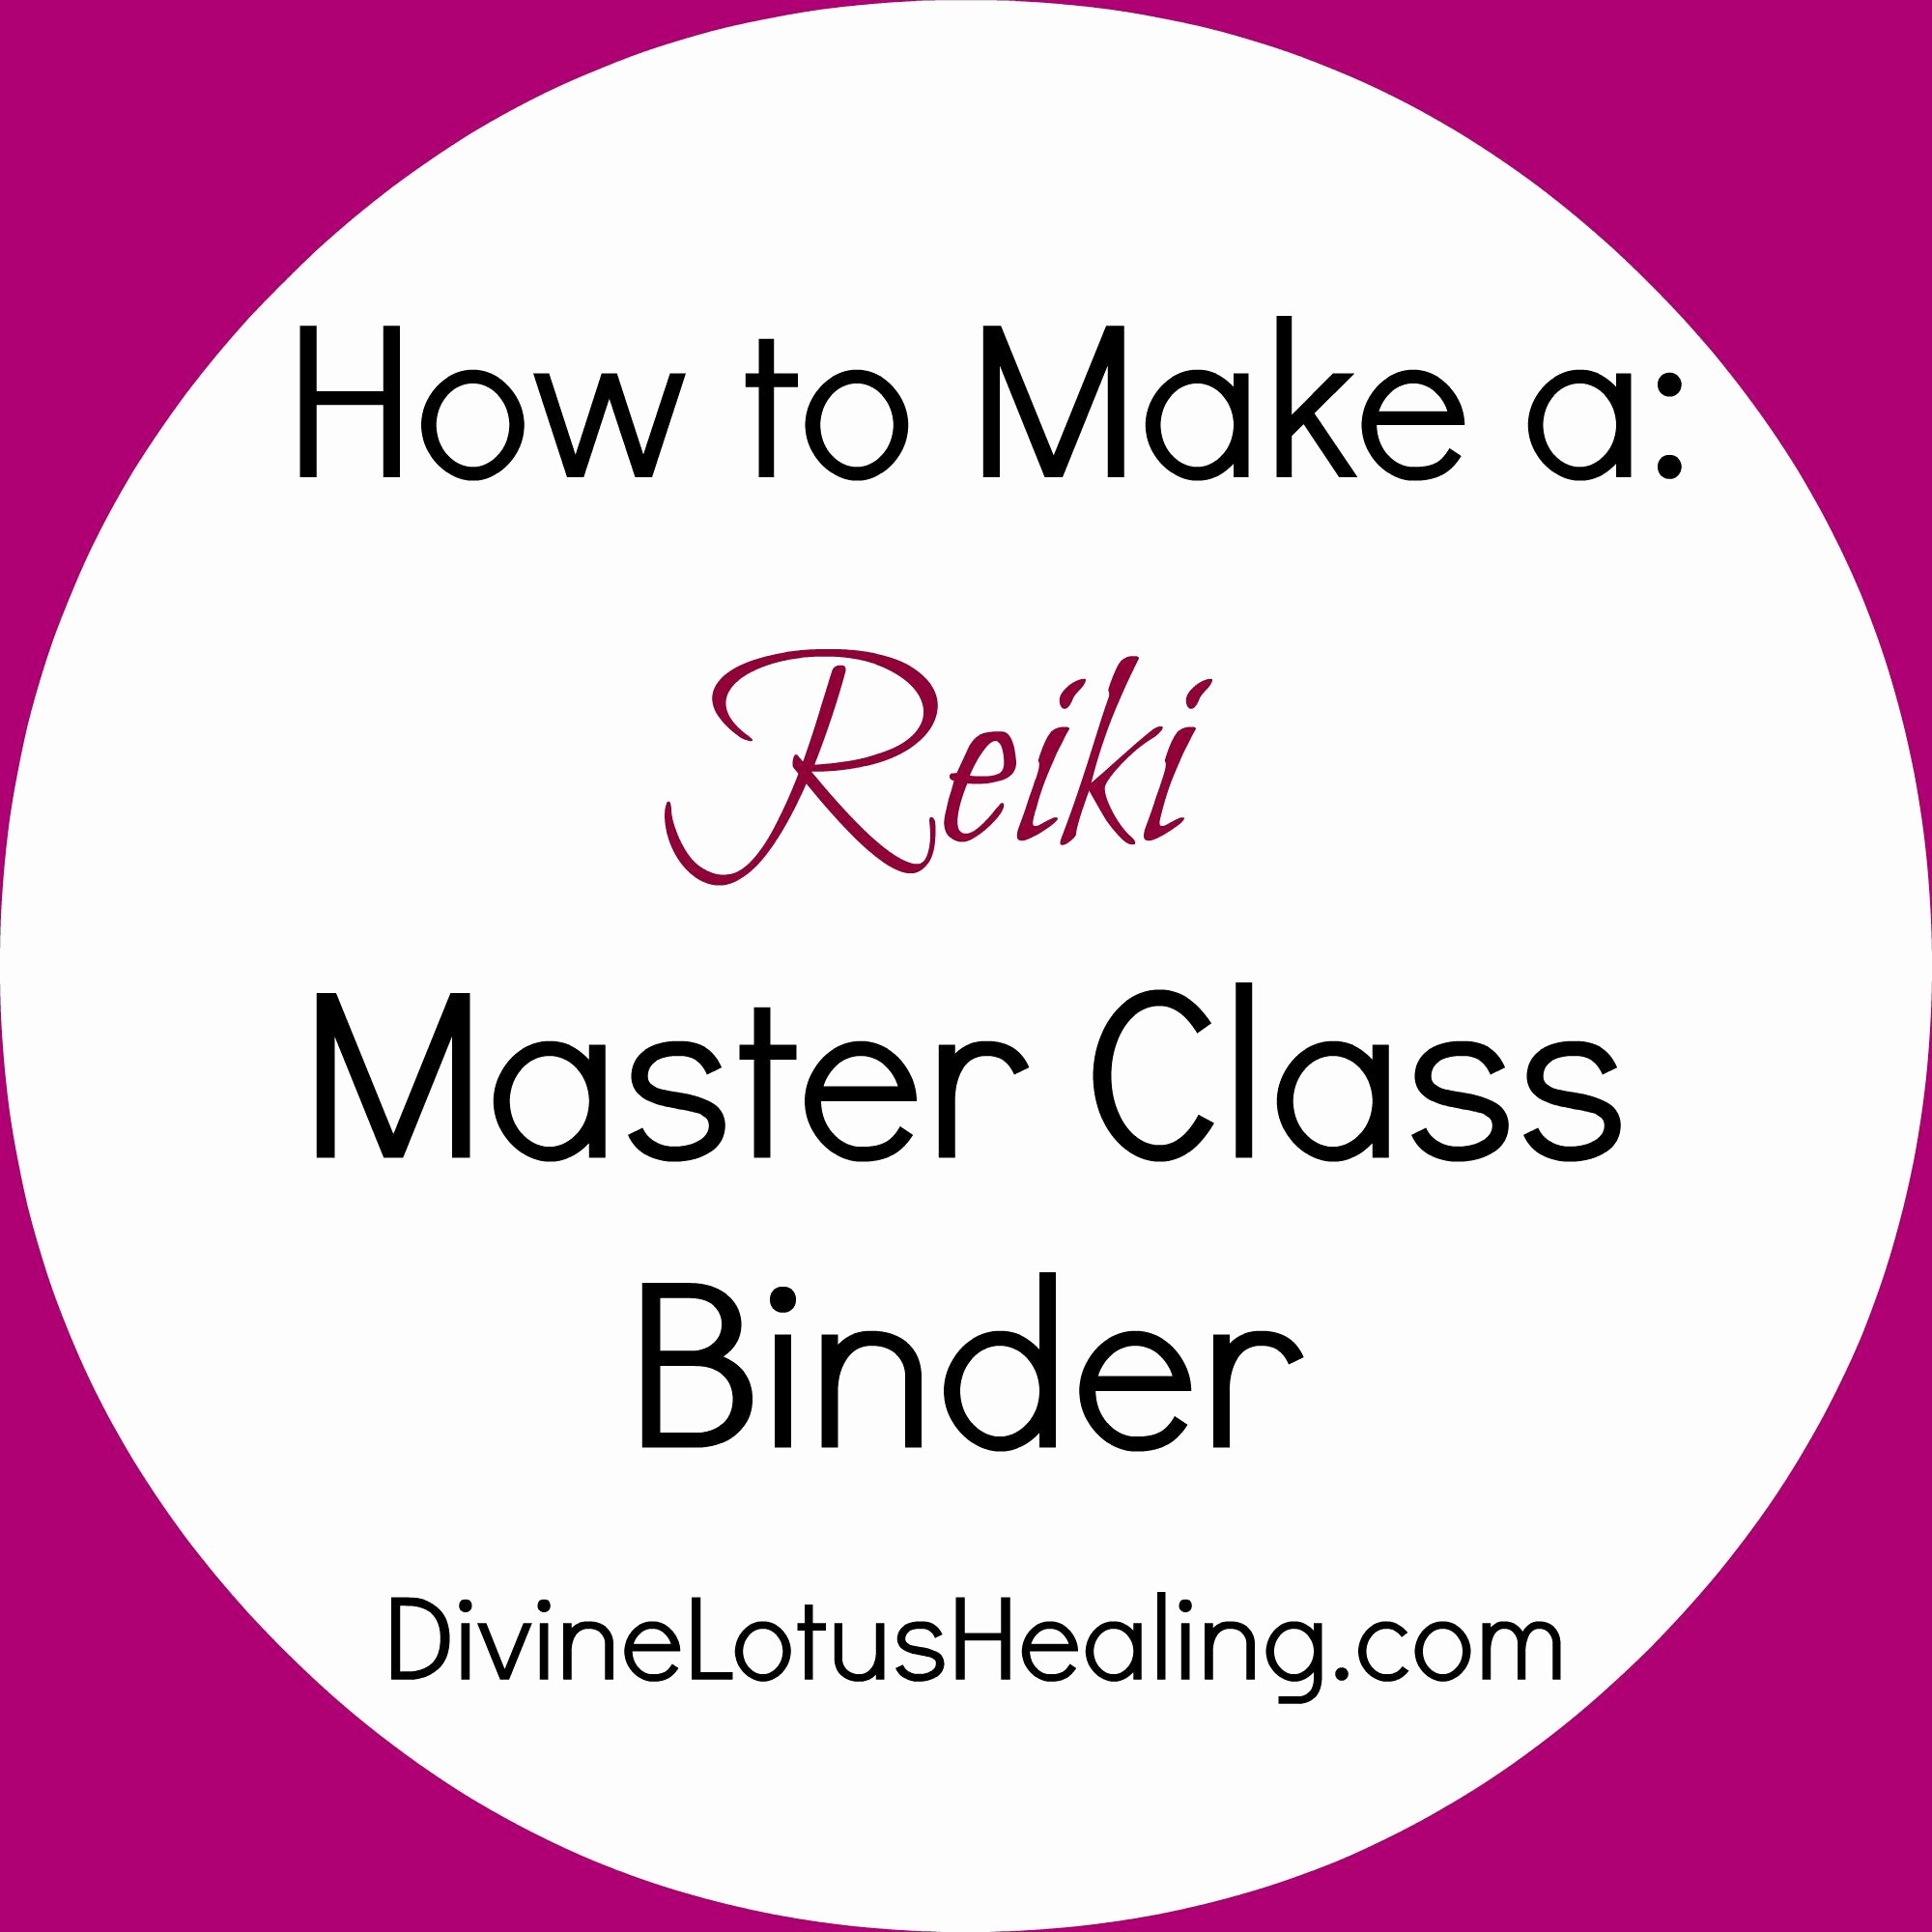 How to Create A Binder Beautiful How to Make A Reiki Master Class Binder